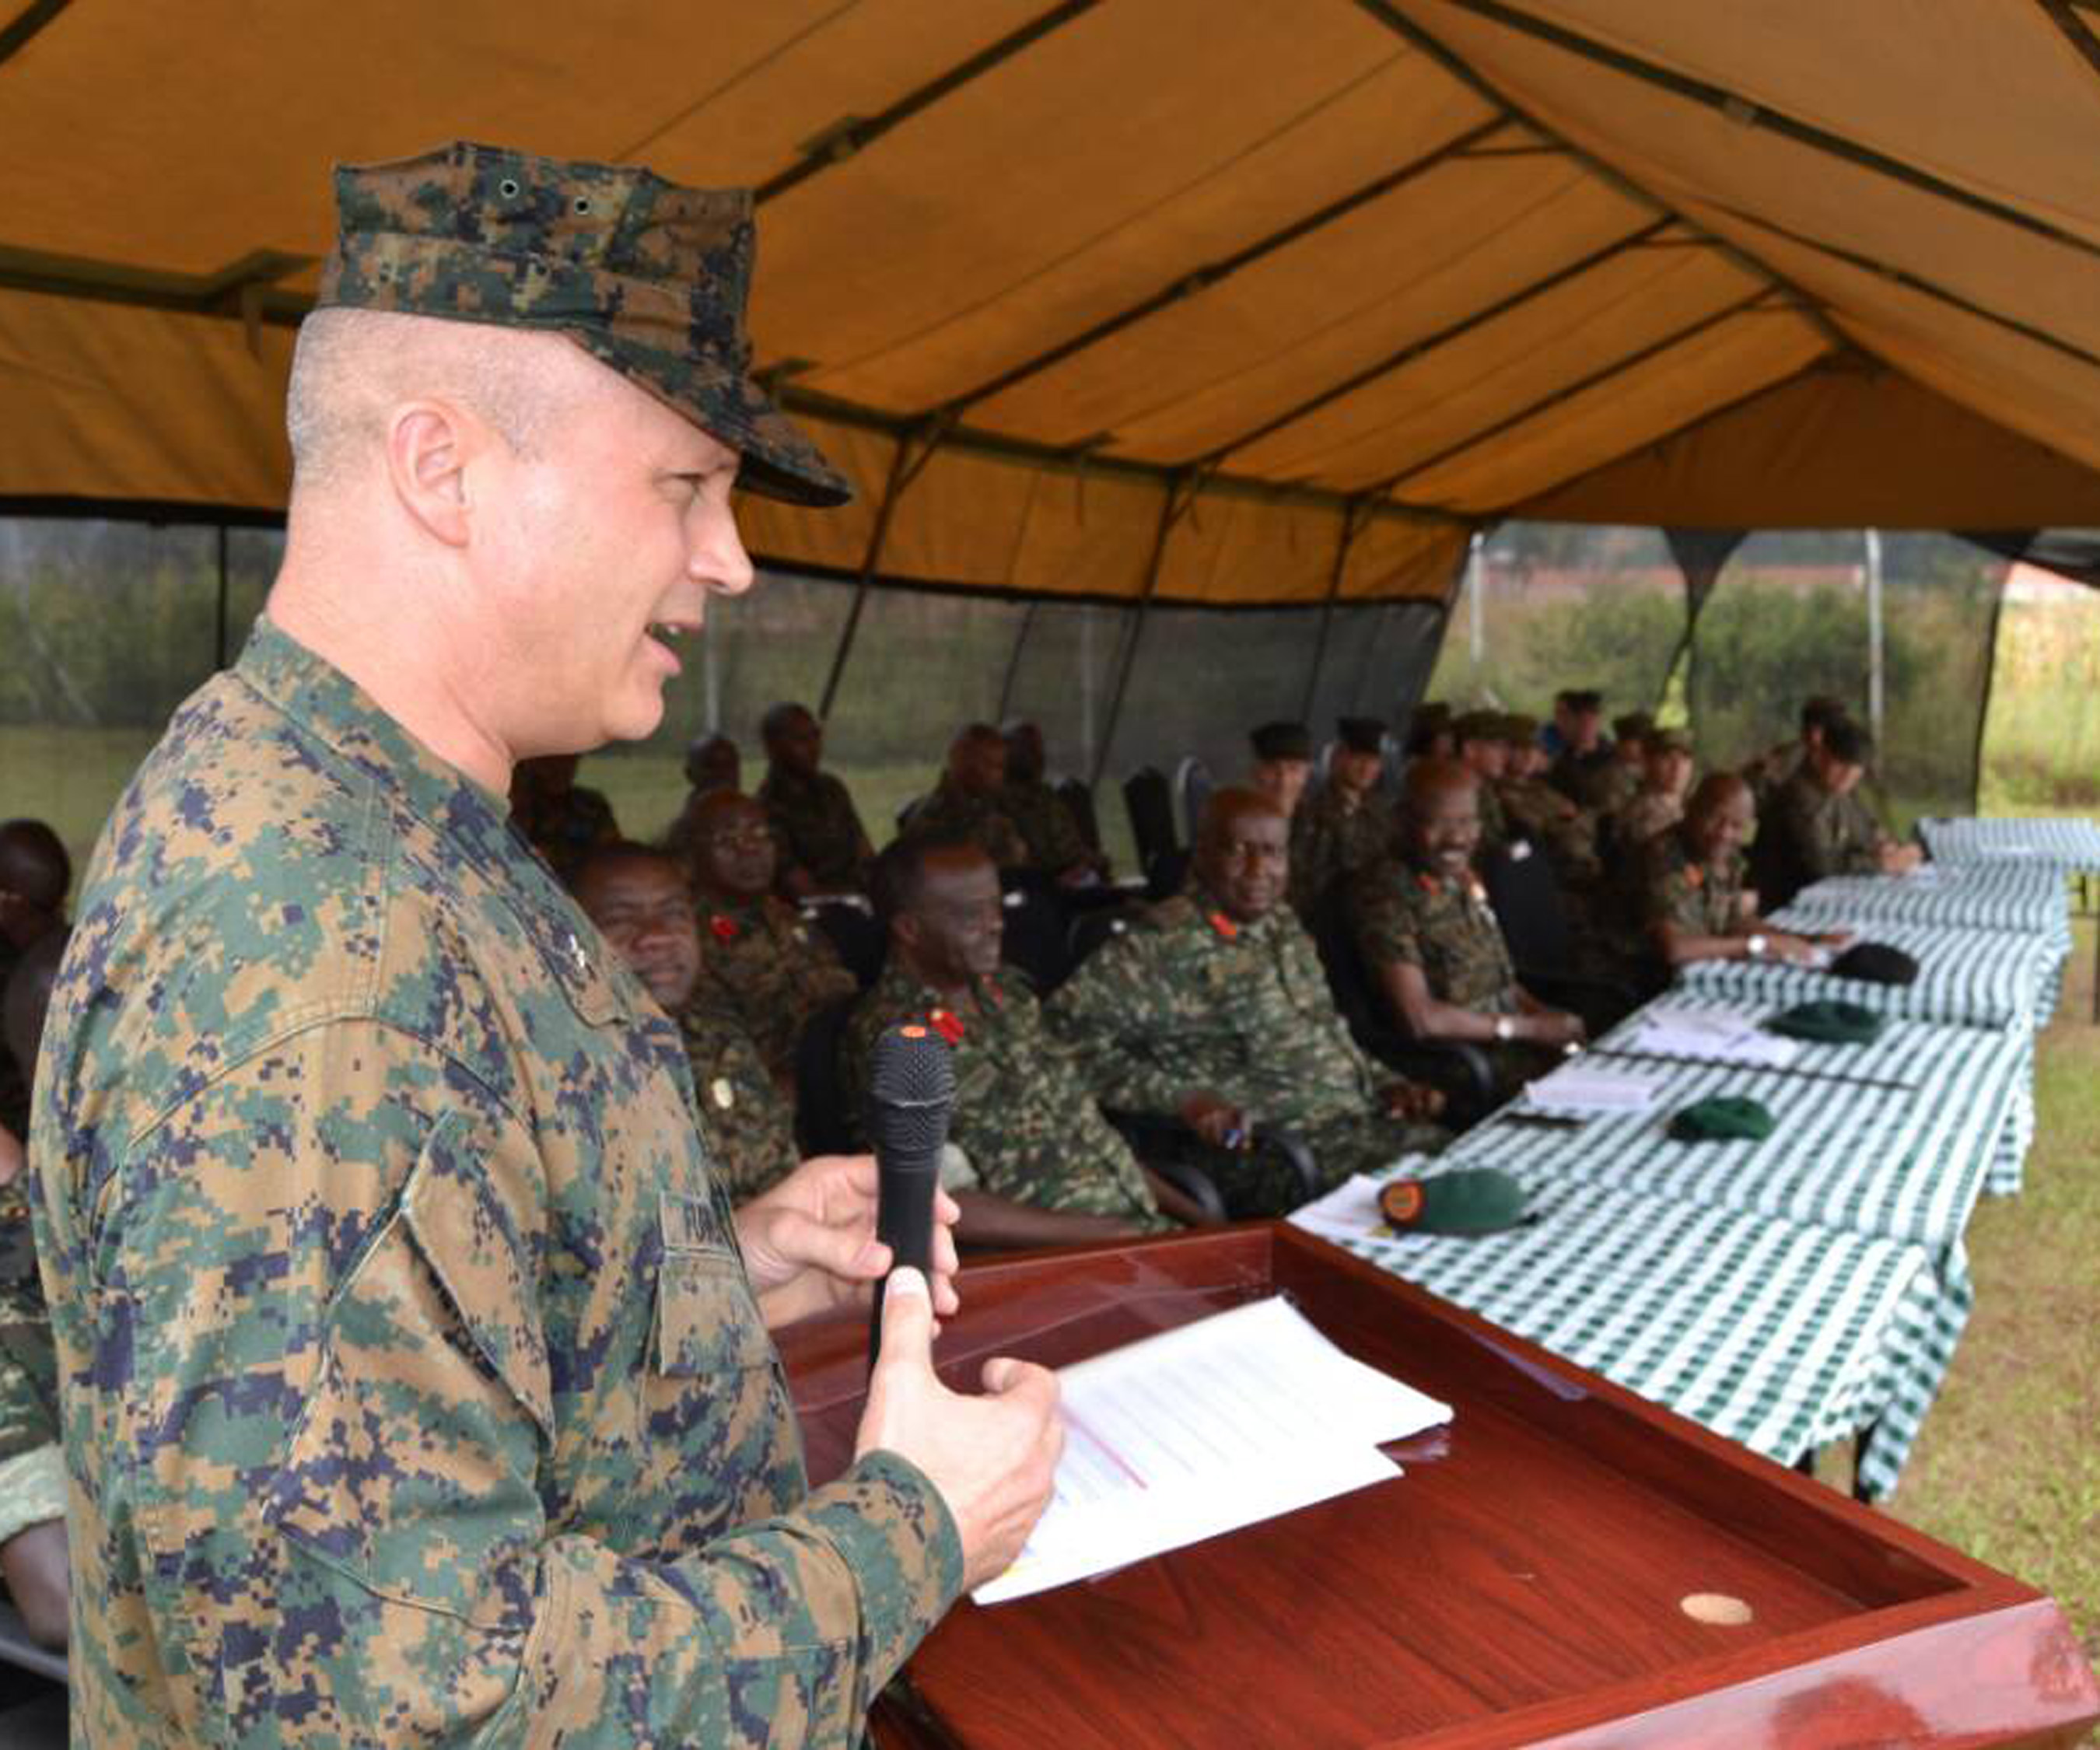 Combined Joint Task Force-Horn of Africa commander U.S. Marine Corps Brig. Gen. David Furness gives remarks to a crowd including Uganda People's Defense Force leadership, staff, as well as students who graduated July 7, 2017, from a two-month engineering course in Jinja, Uganda. The Class 17.2 graduation was historic because it marked the conclusion of the first class where UPDF instructors both ran and taught the entire course, advised by U.S. Marine Corps partners from the Special Purpose Marine Air-Ground Task Force-Crisis Response-Africa. The course covered three subjects, including civil engineering, heavy equipment operations and utilities management. (Courtesy photo by Uganda Army Lt. Col. Nelson Aheebwa)